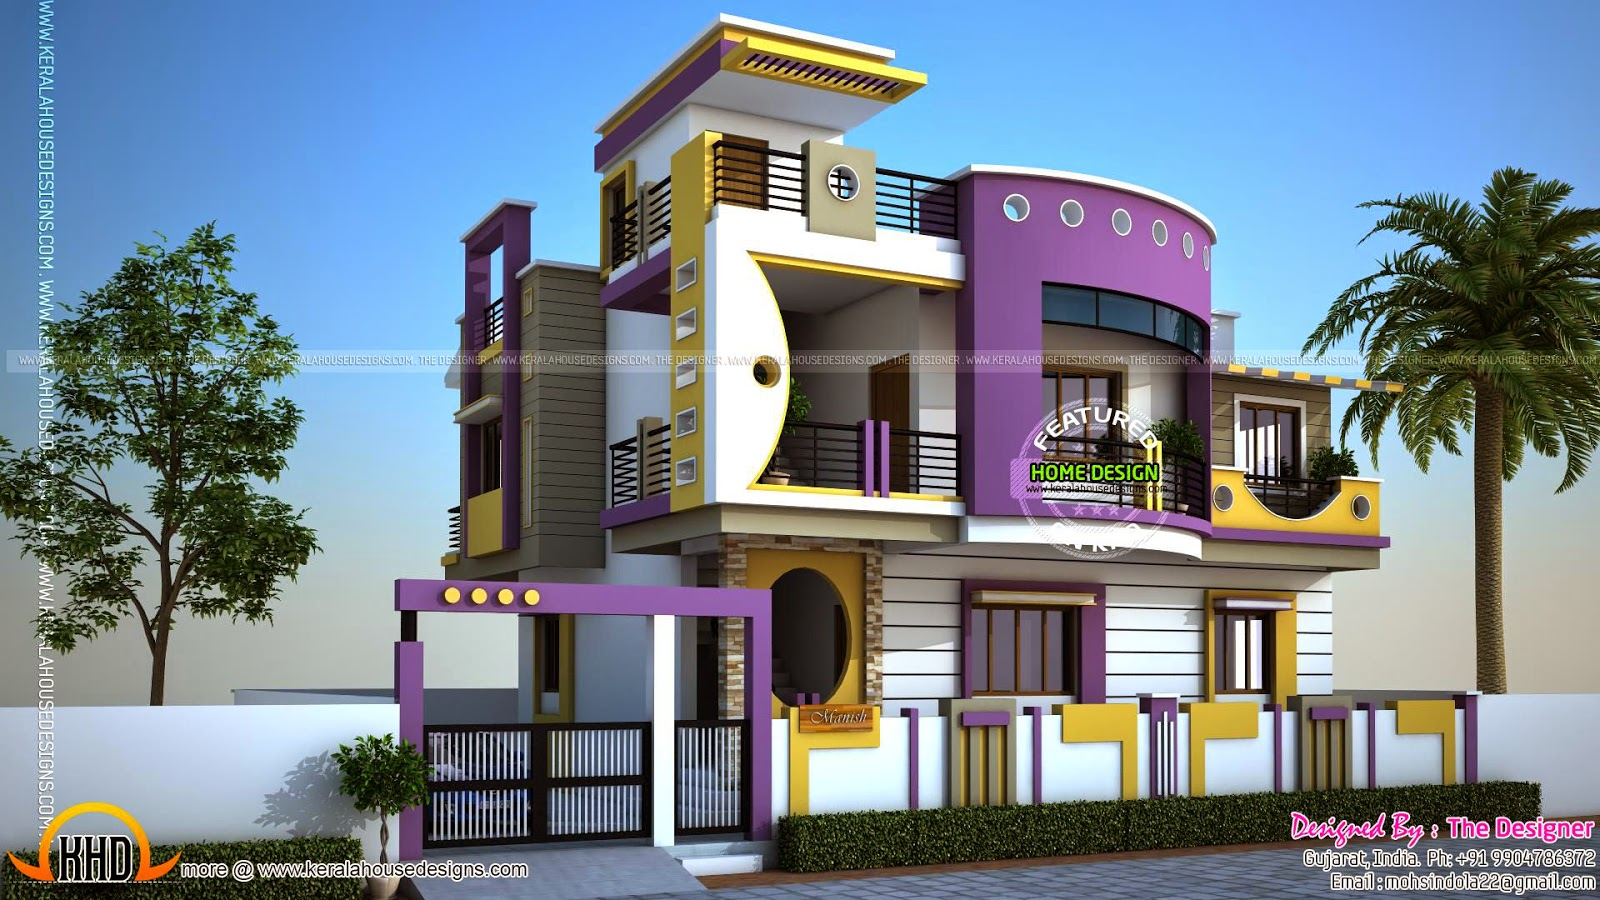 House exterior designs in contemporary style kerala home for Home designs exterior styles